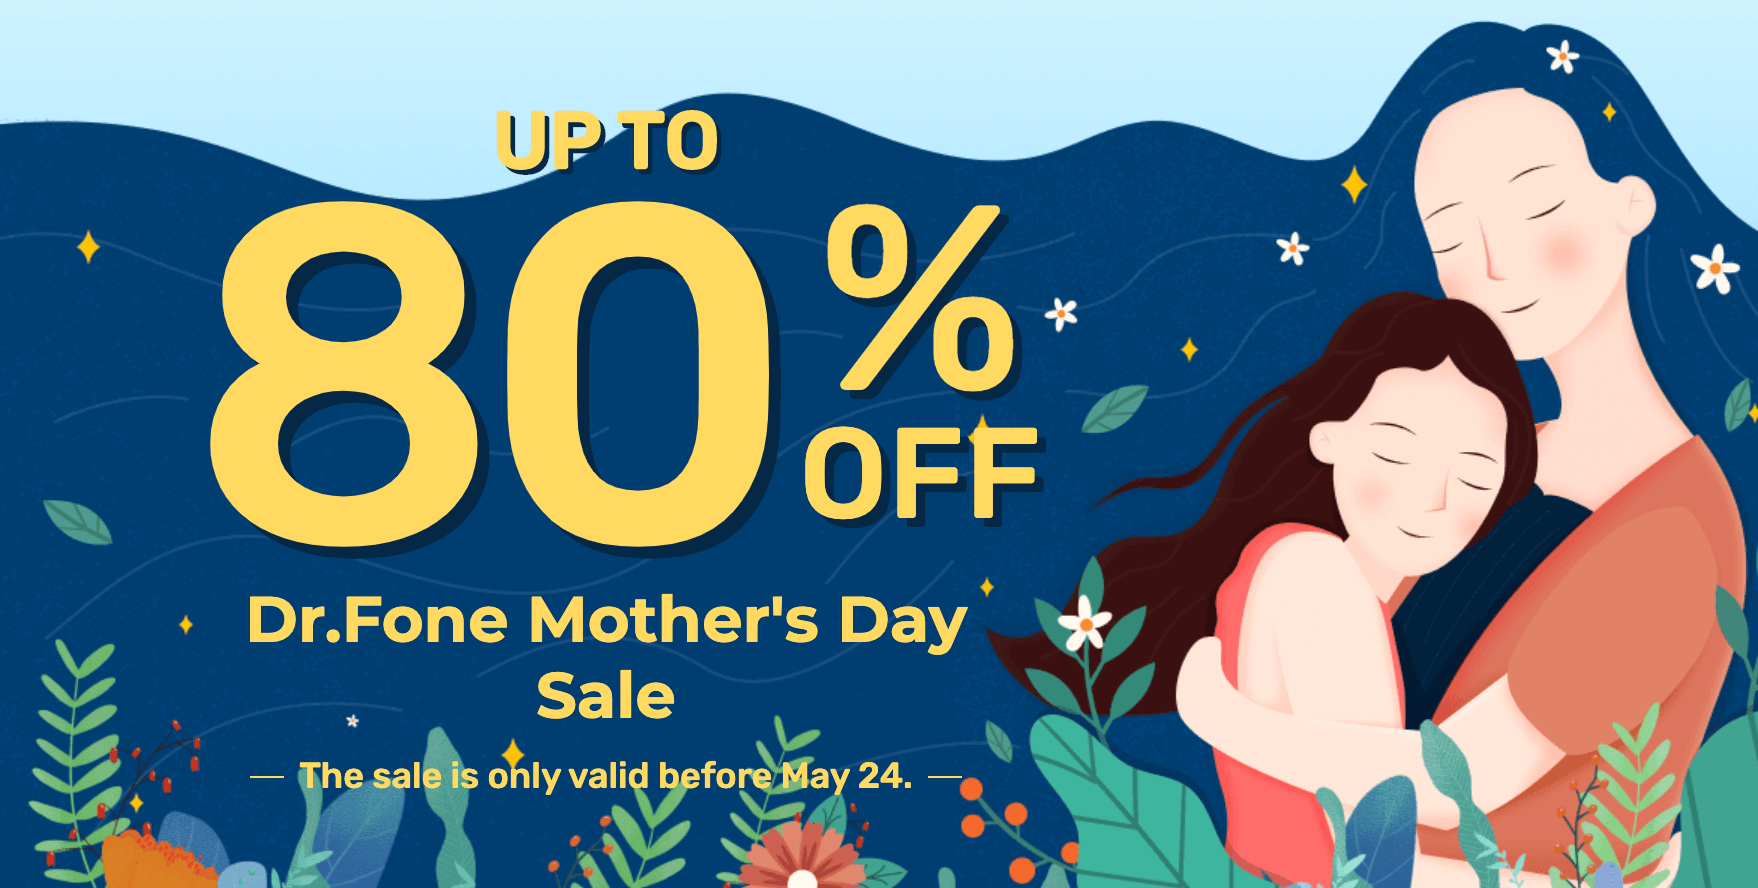 Dr. Fone Mother's Day Sale